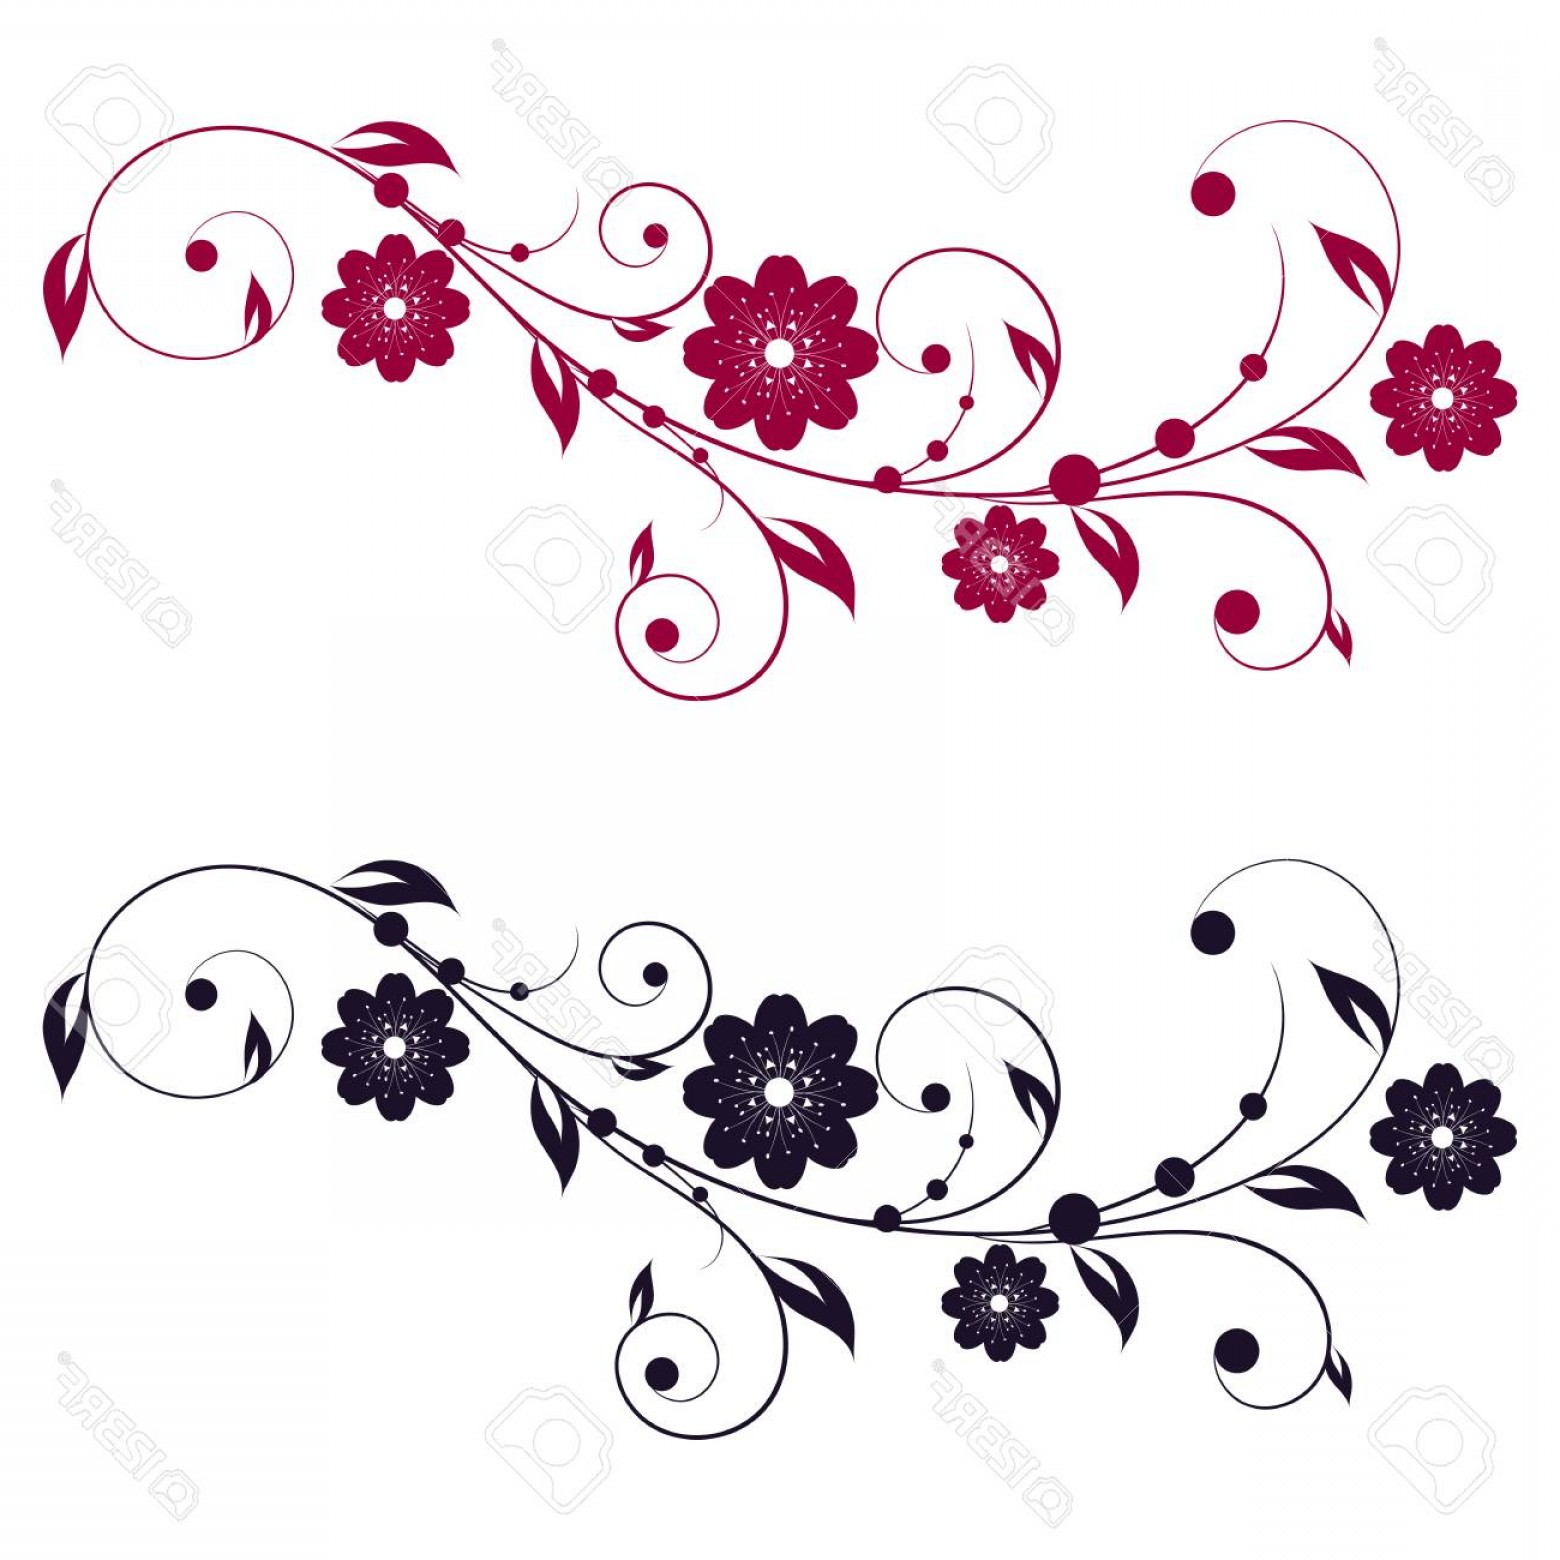 1560x1560 Photostock Vector Abstract Vertical Floral Swirl Silhouette Vector